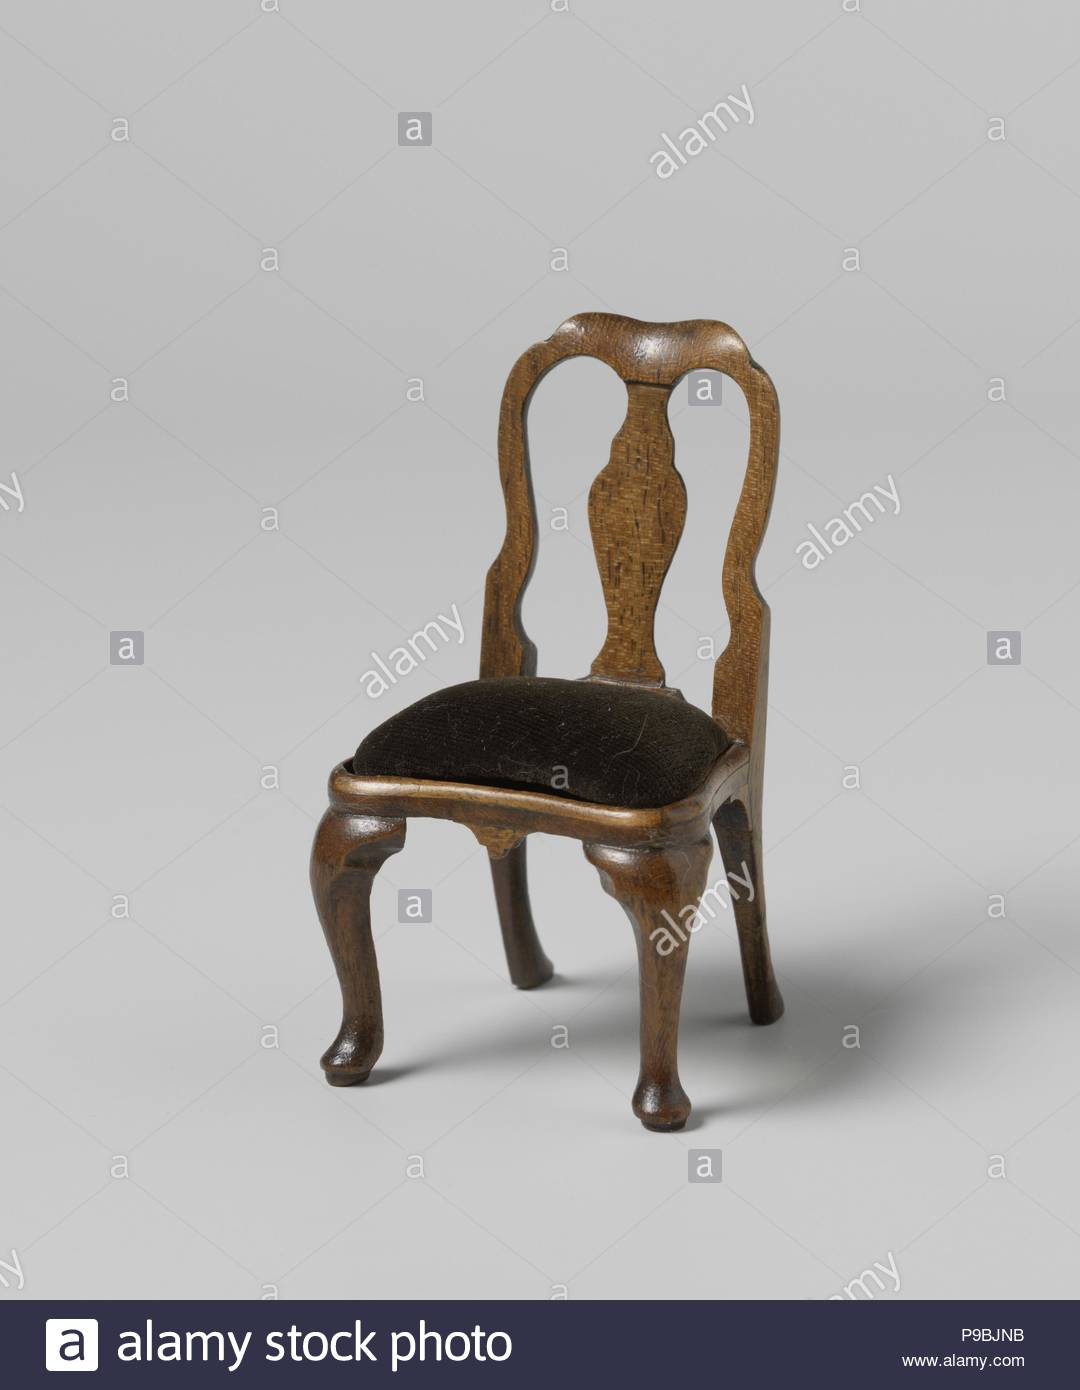 S Shaped Chair Chair Mahogany Round Open Seat Backs With Mullion Straight Line